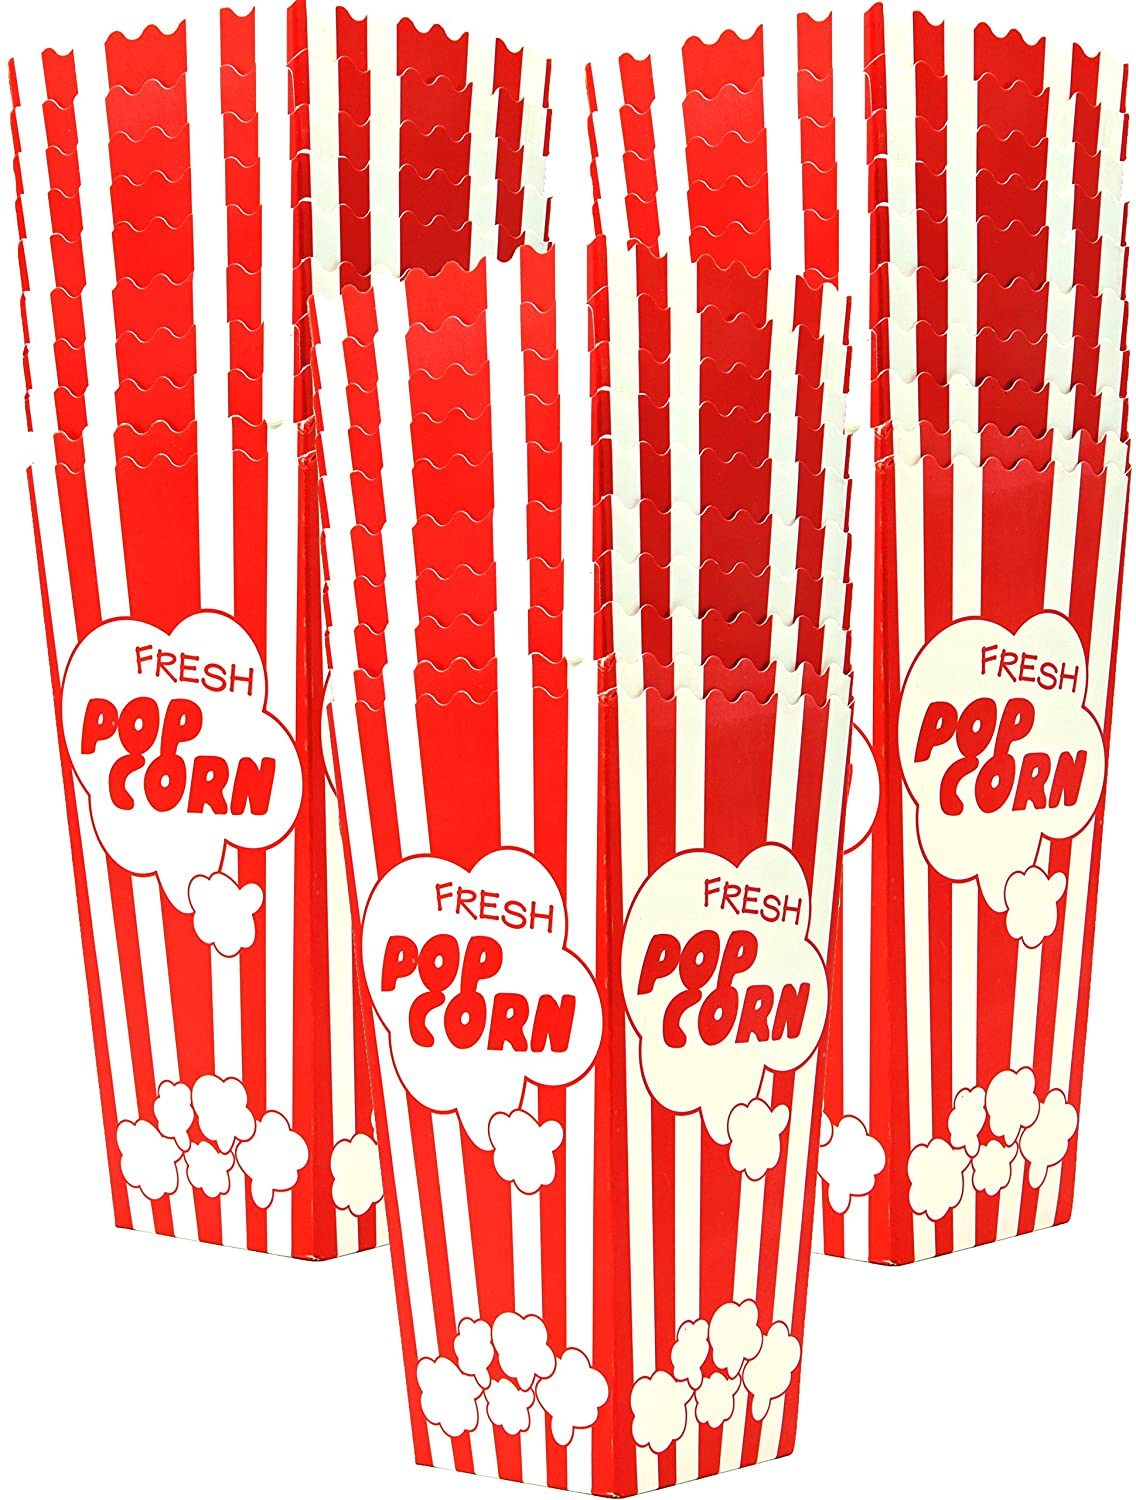 30 Popcorn Boxes 7.75 Inches Tall & Holds 46 Oz